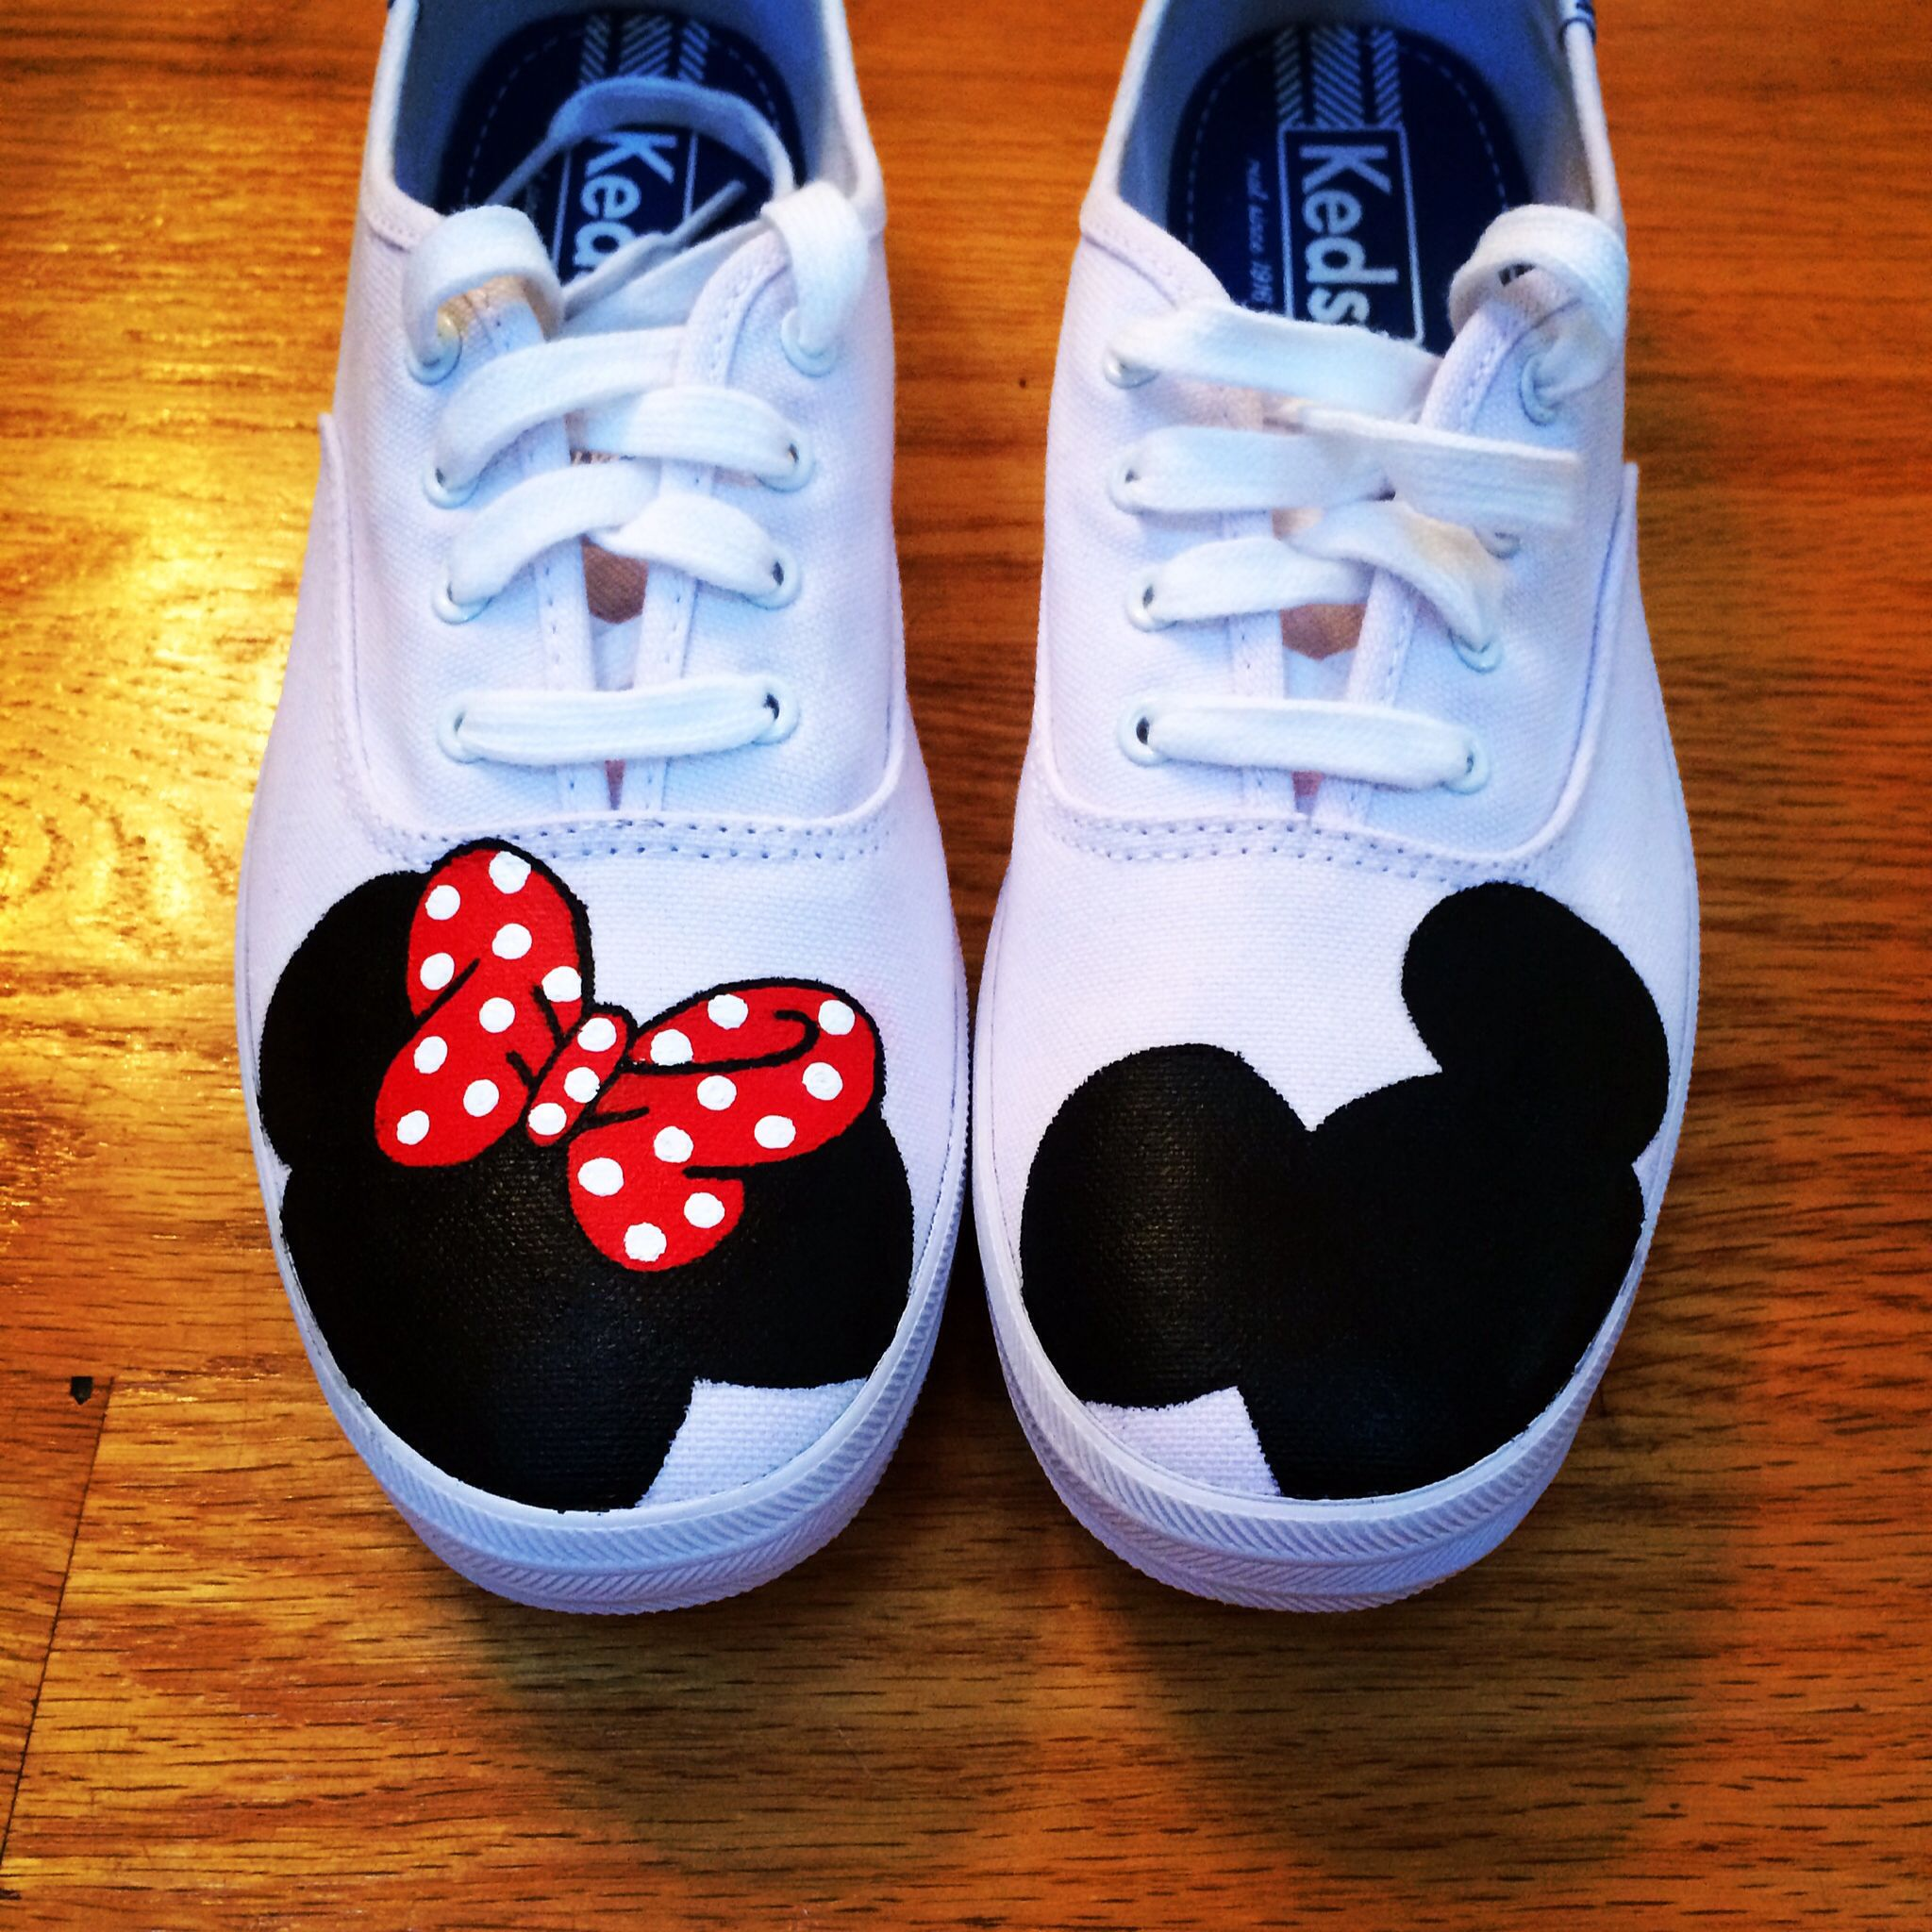 Hand painted Minnie and Mickey Mouse s head on my keds sneakers for